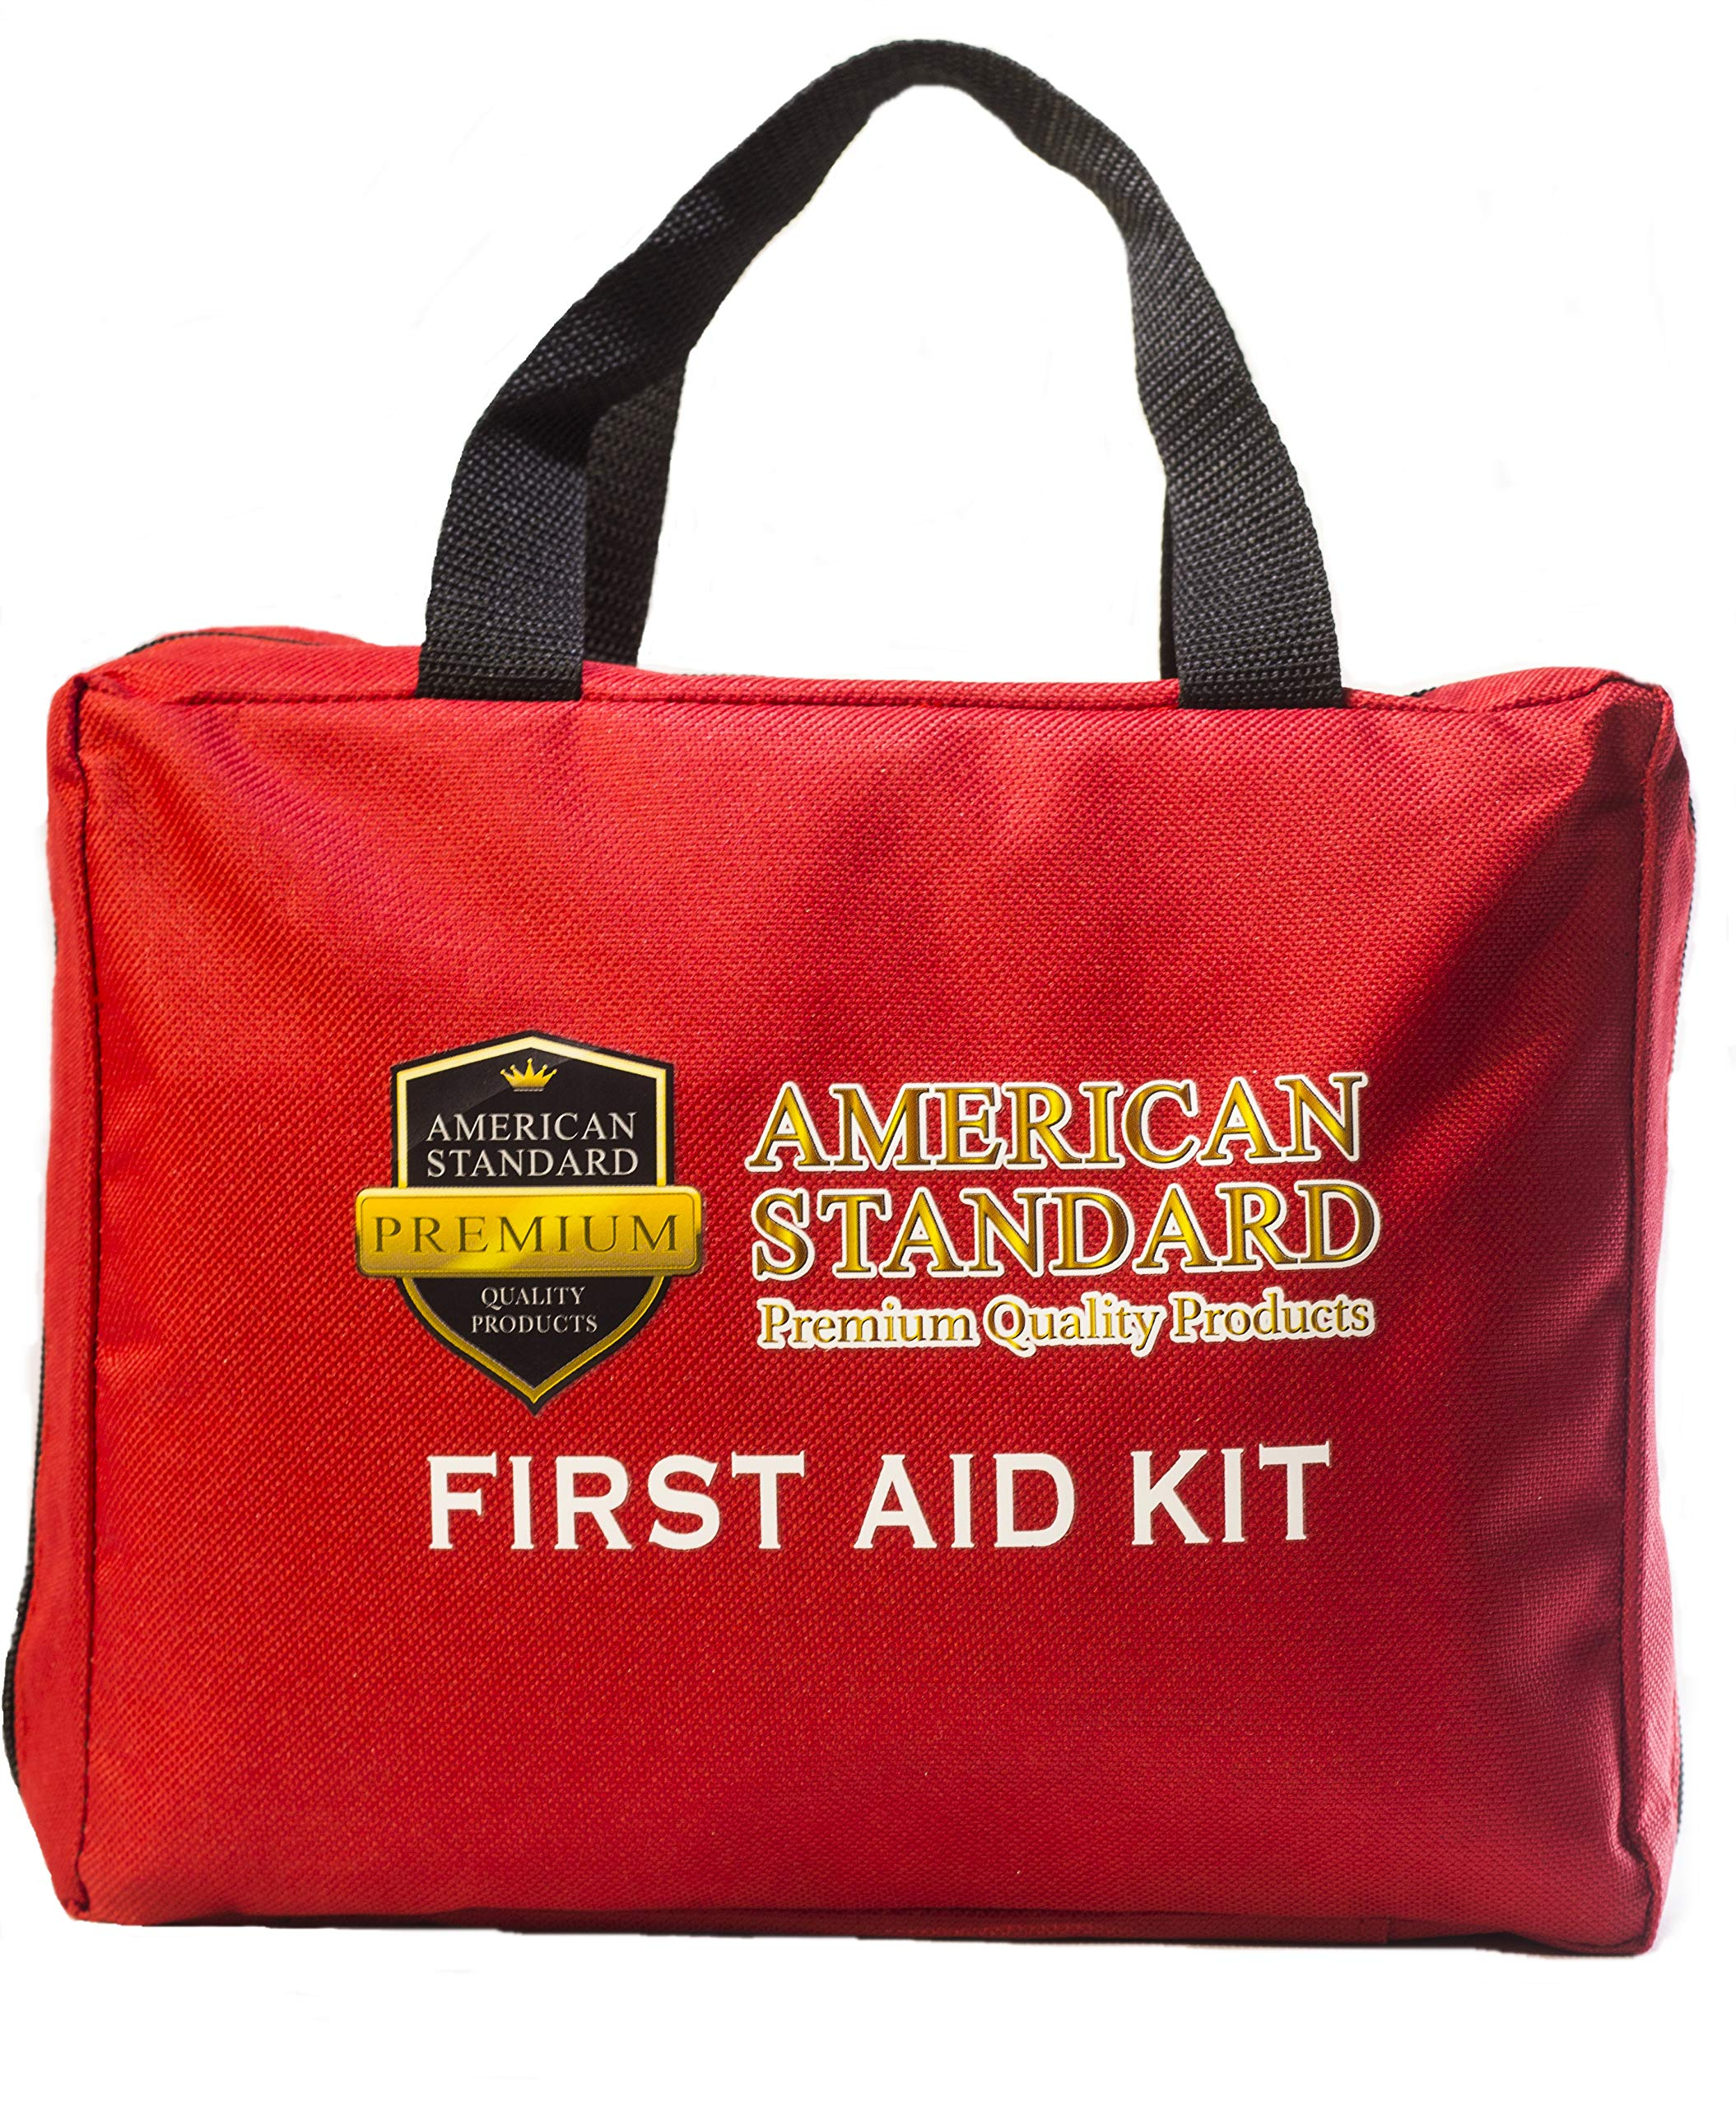 American Standard - First Aid Kit – Emergency Medical Survival Bag – FDA, OSHA, ANSI Approved for Office, Businesses, Home, Car, RV, Boat – Camping, Hiking, Hunting, Sports & Travel First Aid Kit